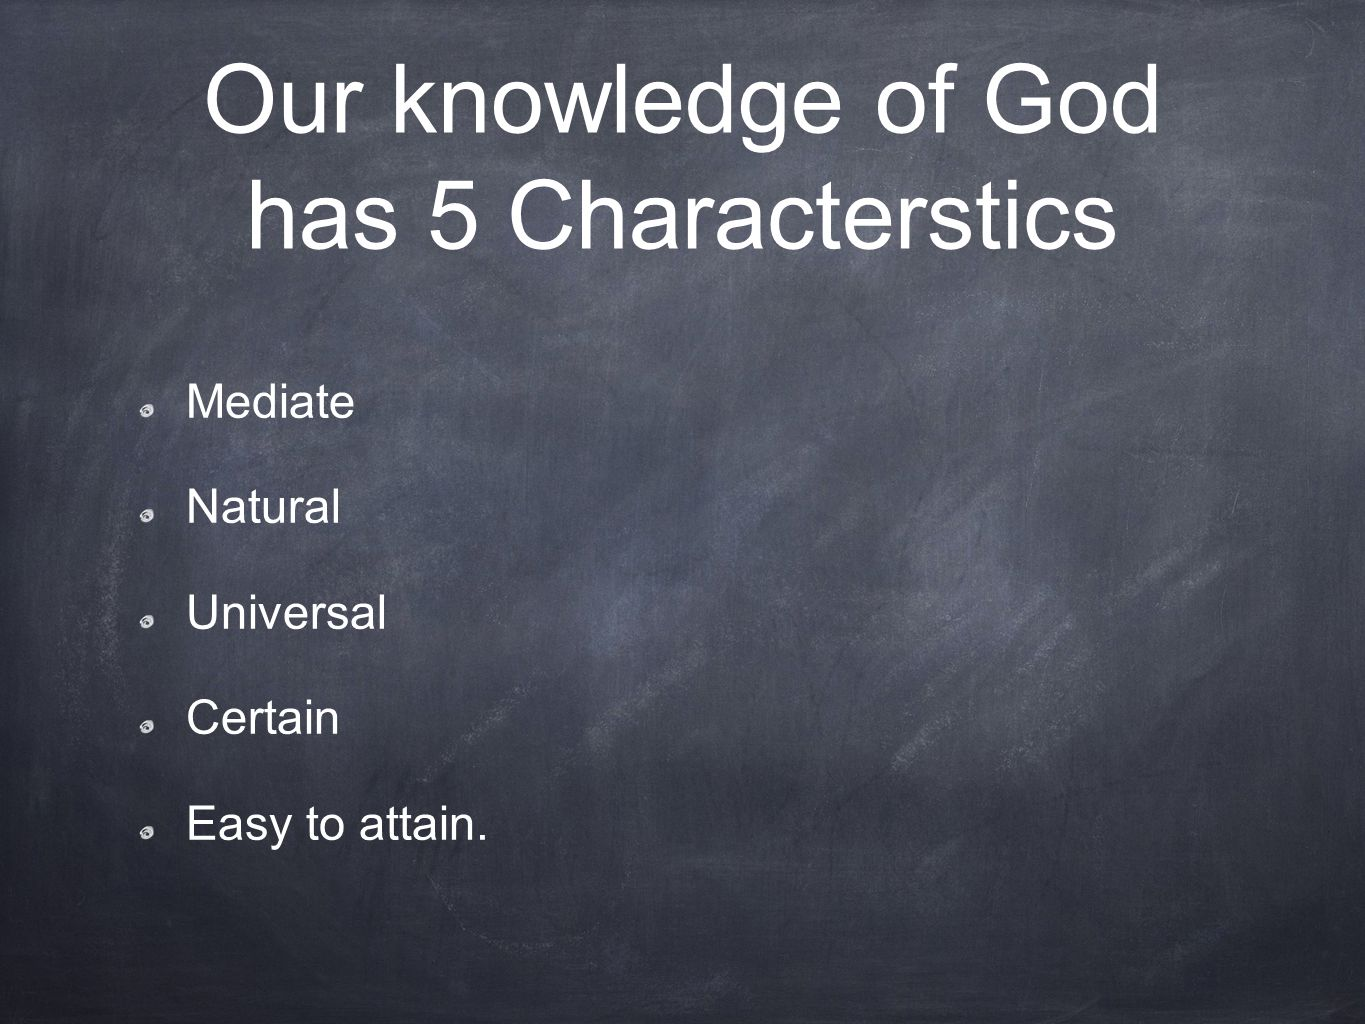 Our knowledge of God has 5 Characterstics